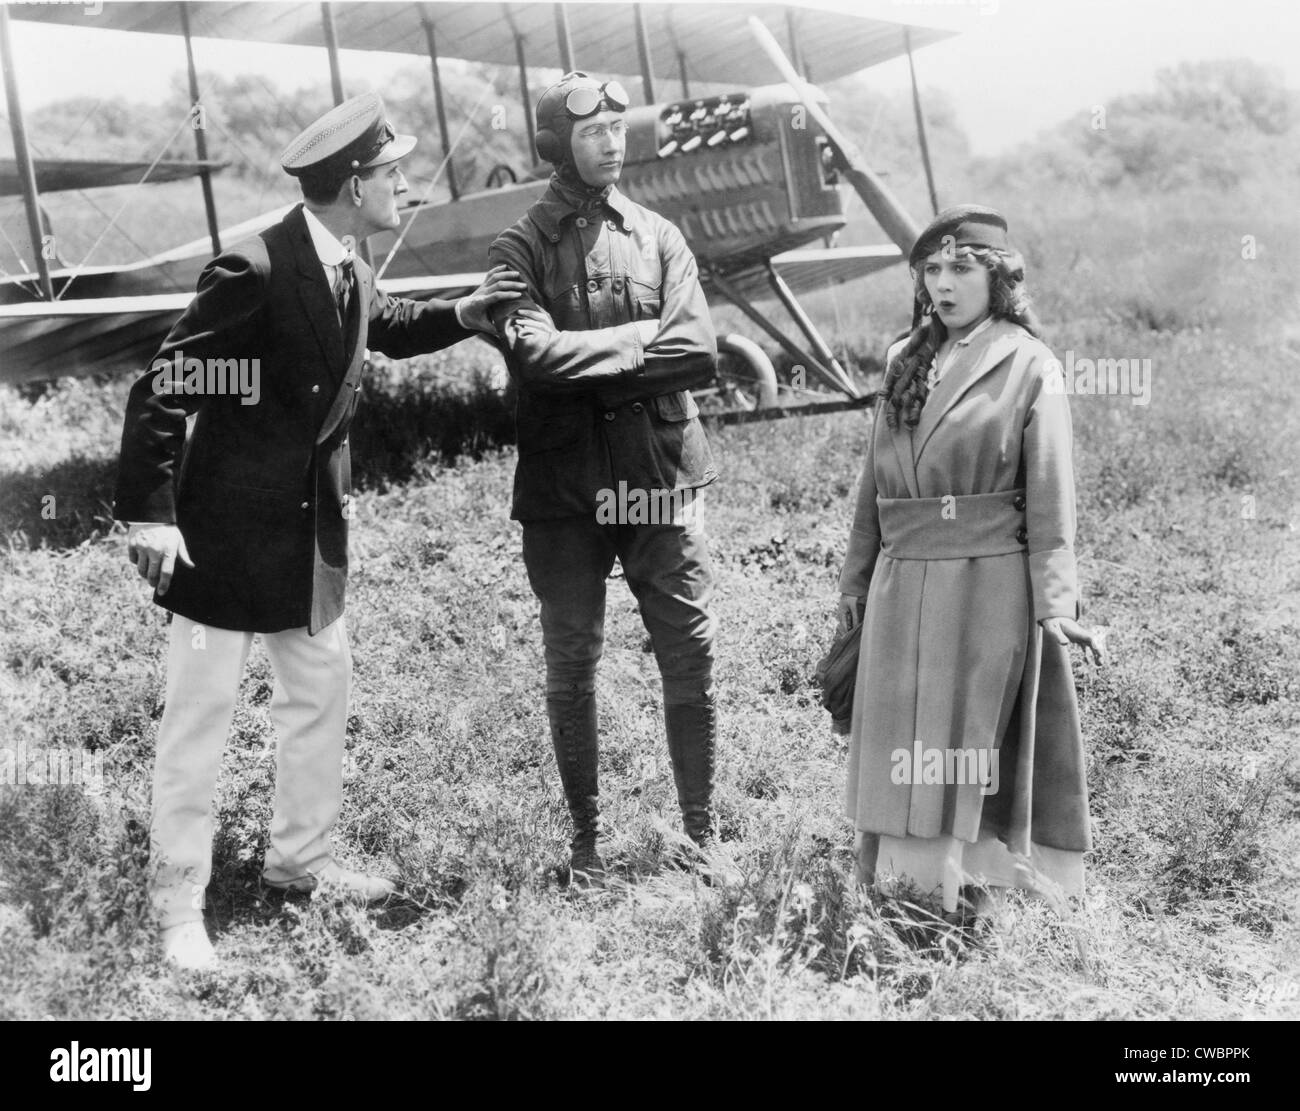 Mary Pickford and Glenn Martin, aviation pioneer, from scene of motion picture GIRL OF YESTERDAY (1915). - Stock Image